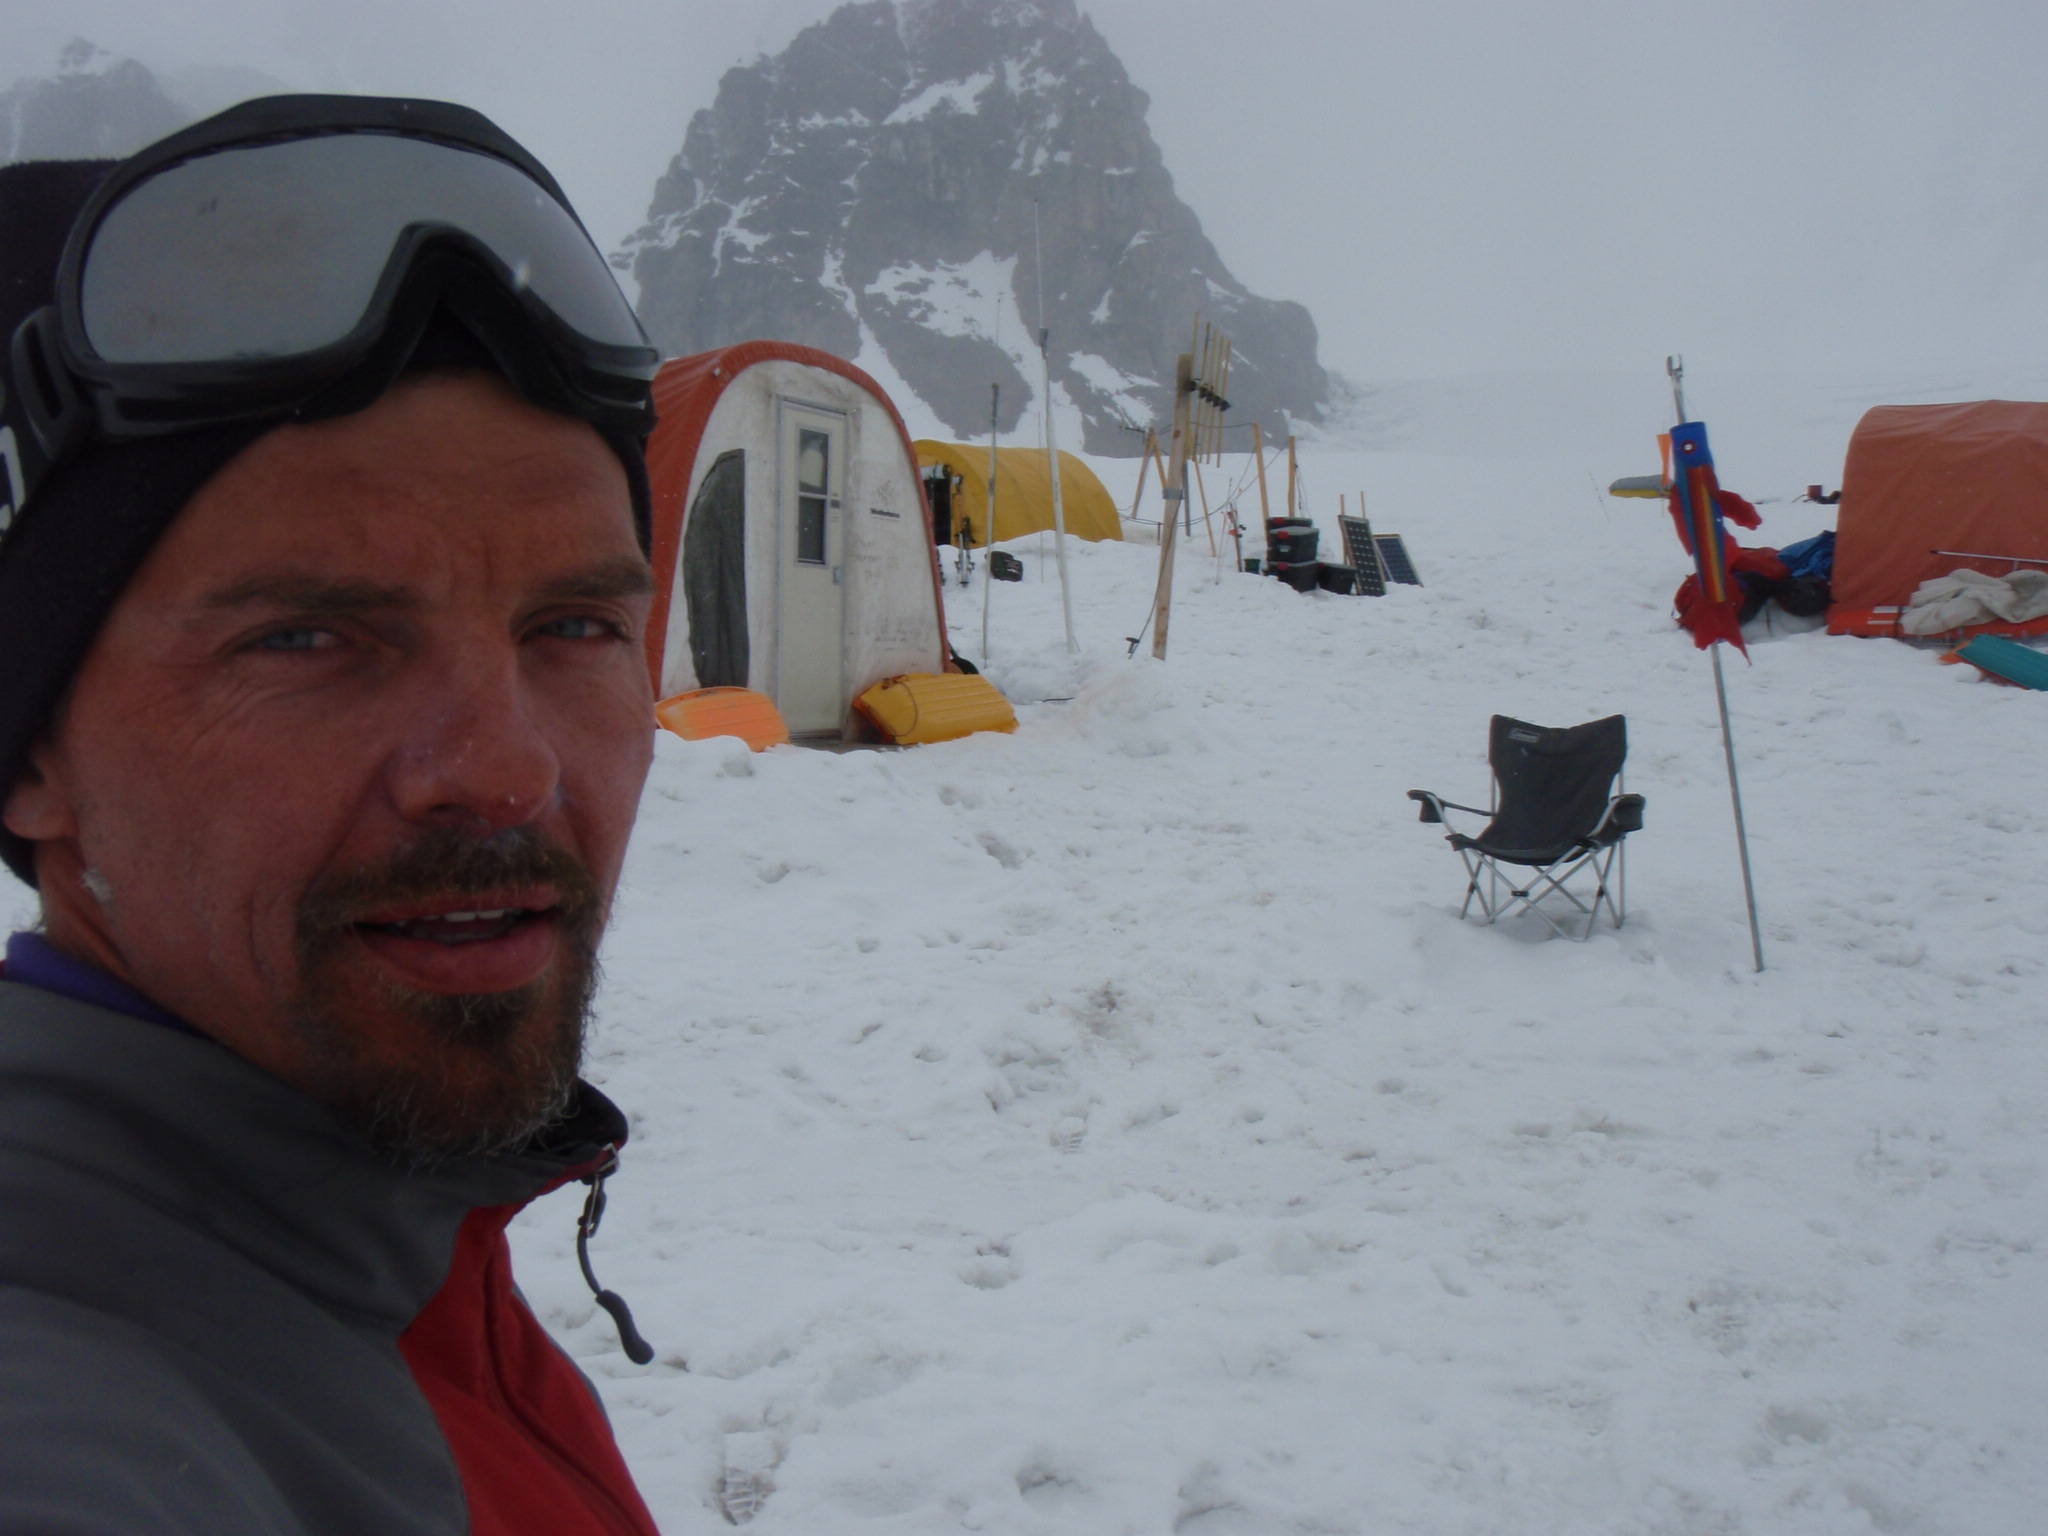 Back at Denali basecamp after 2 unsuccessful weeks on the mountain and a marathon descent